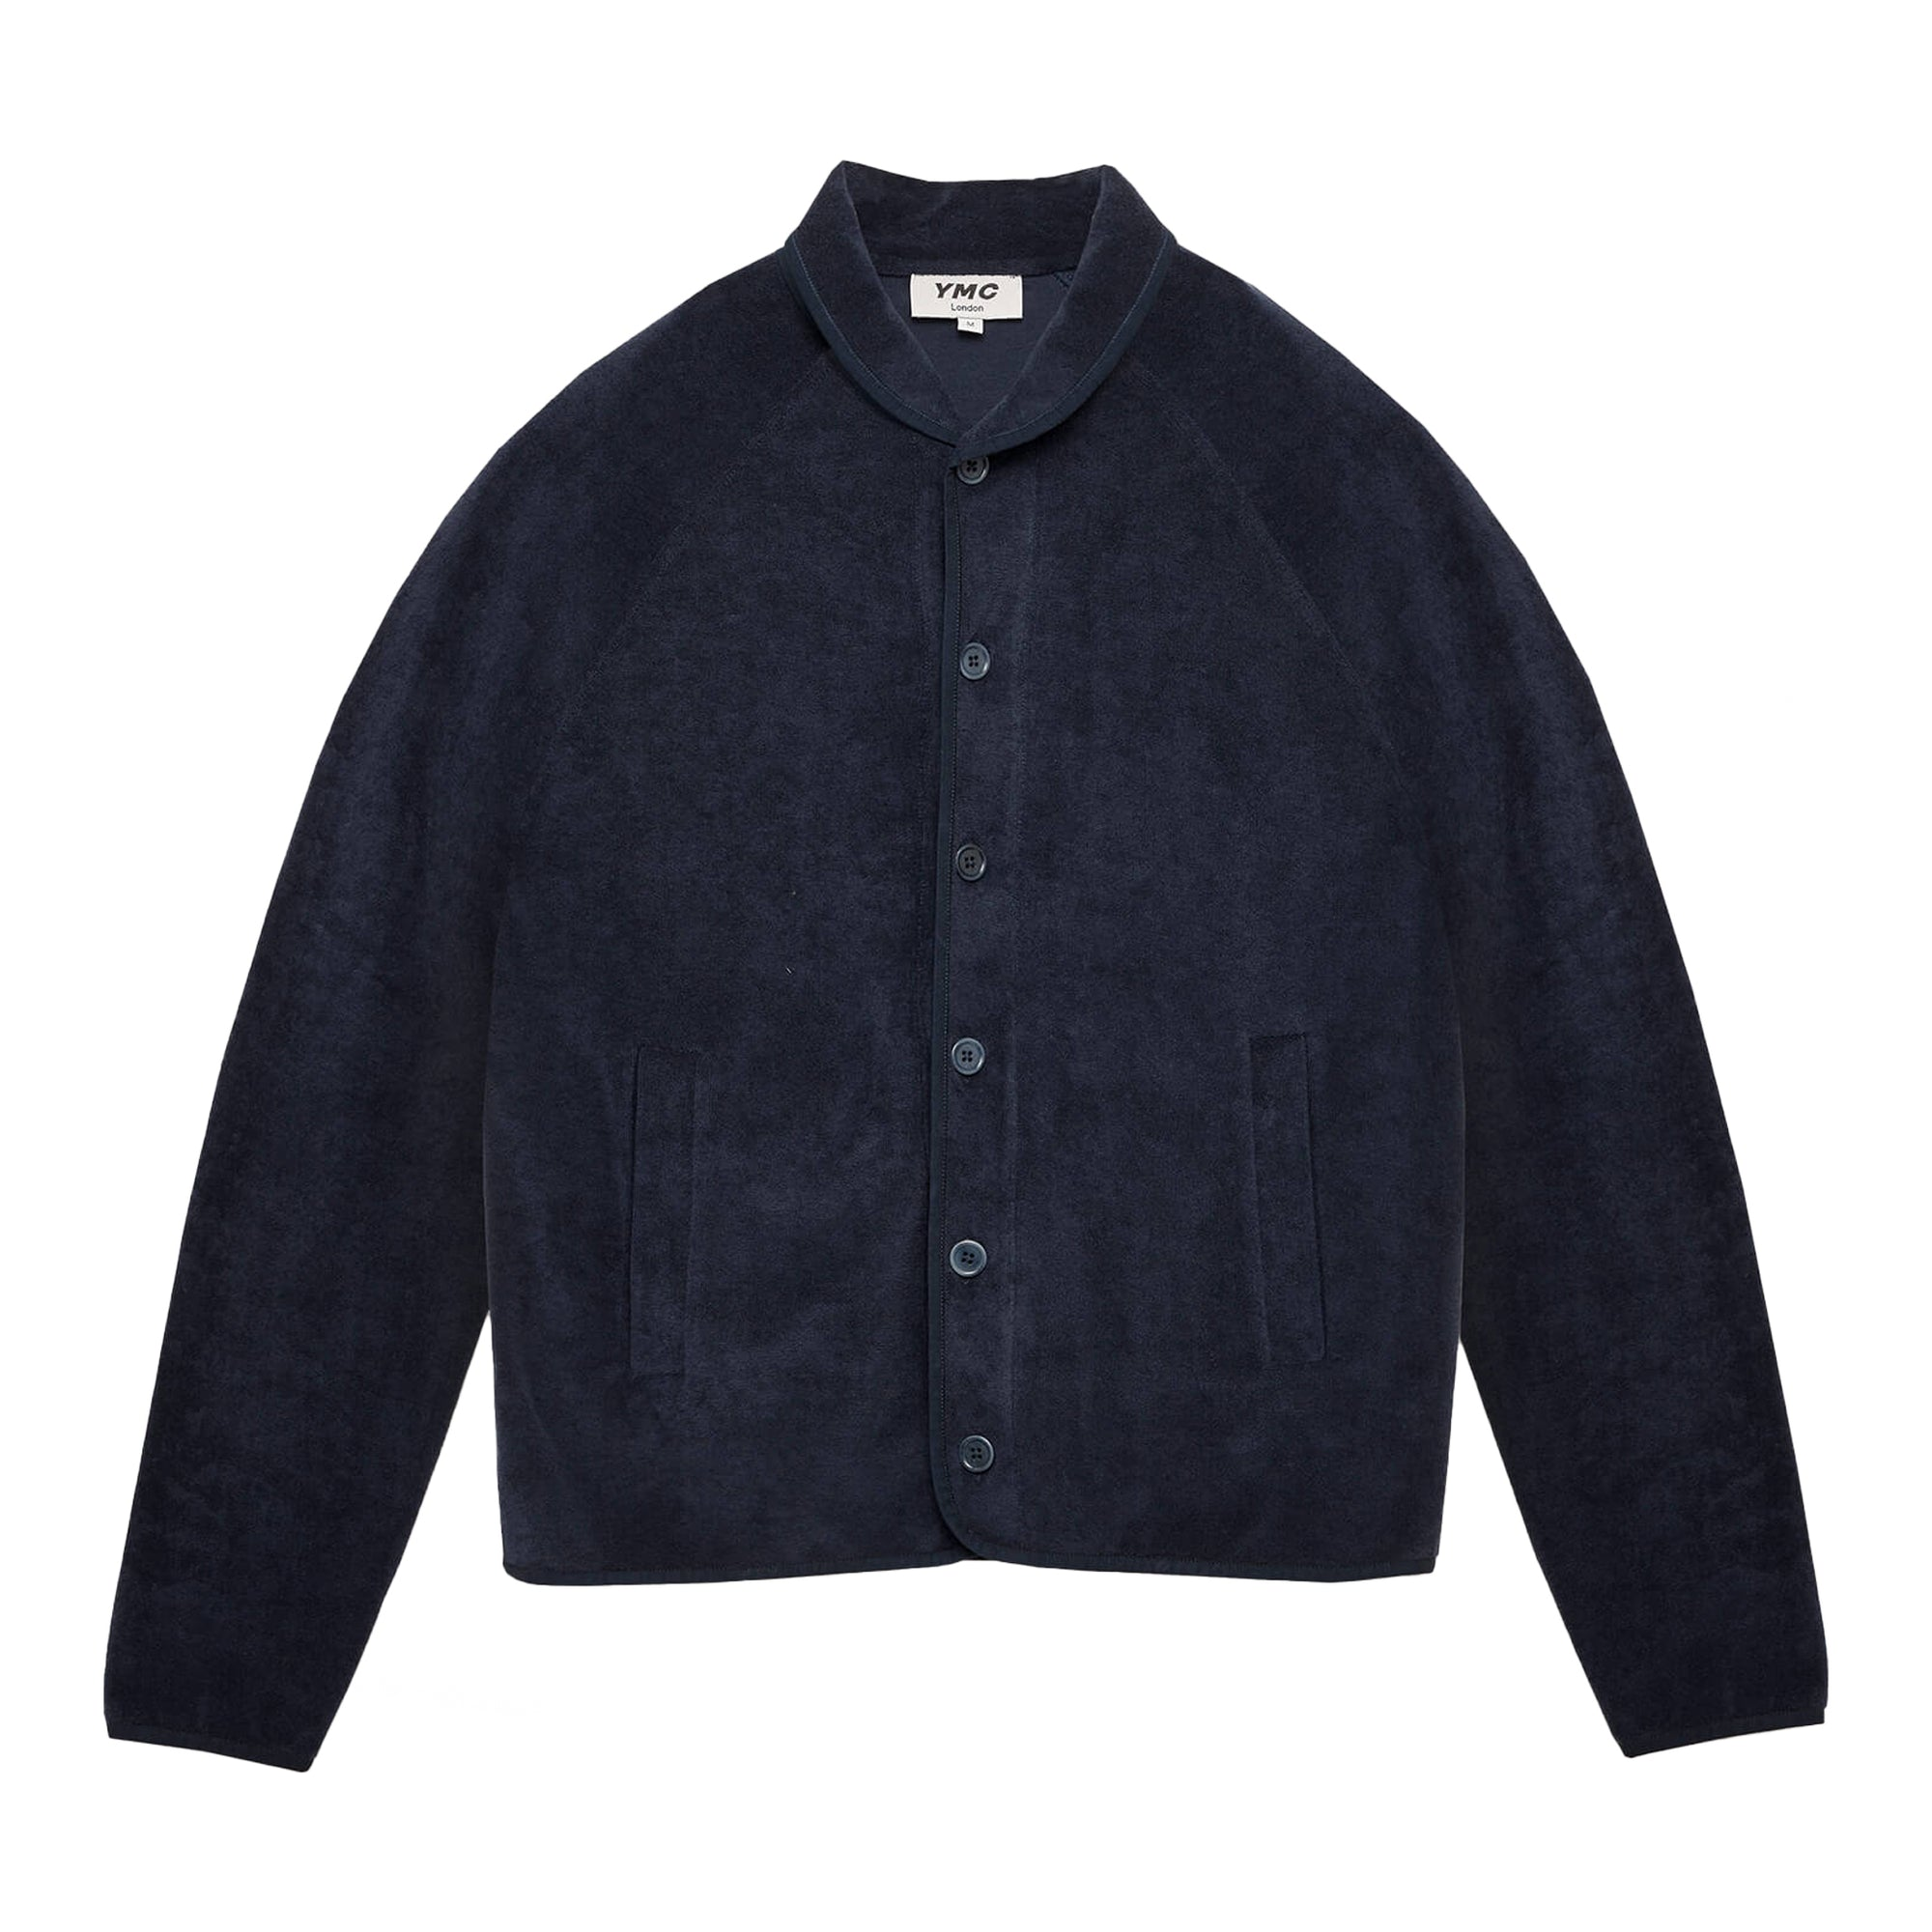 YMC Beach Jacket Towelling: Navy - The Union Project